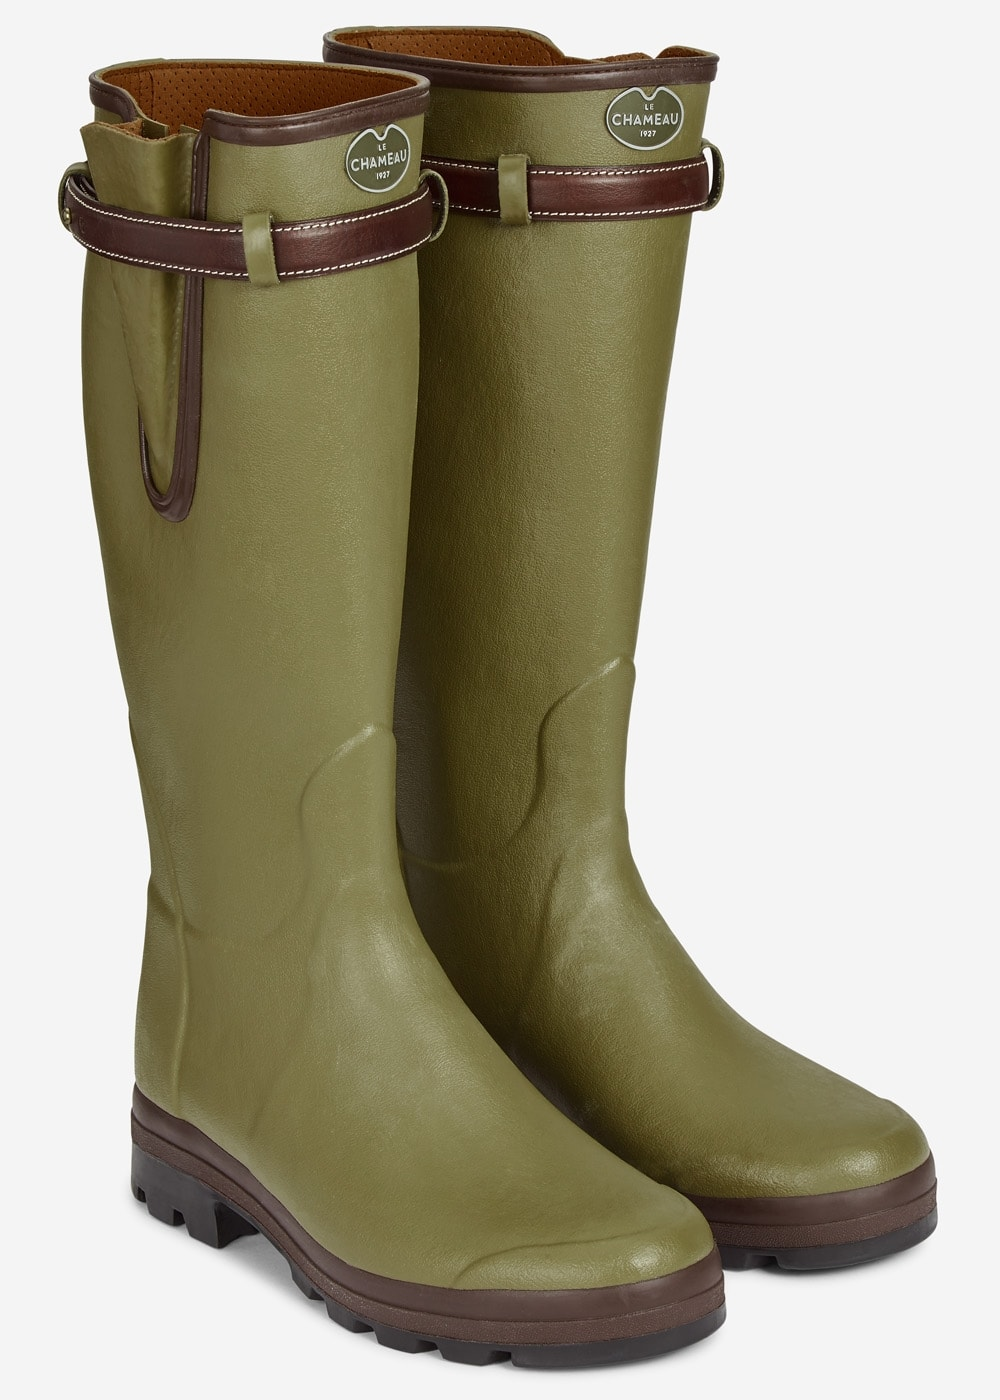 more photos latest style pretty cool Vierzon 50 Wellingtons